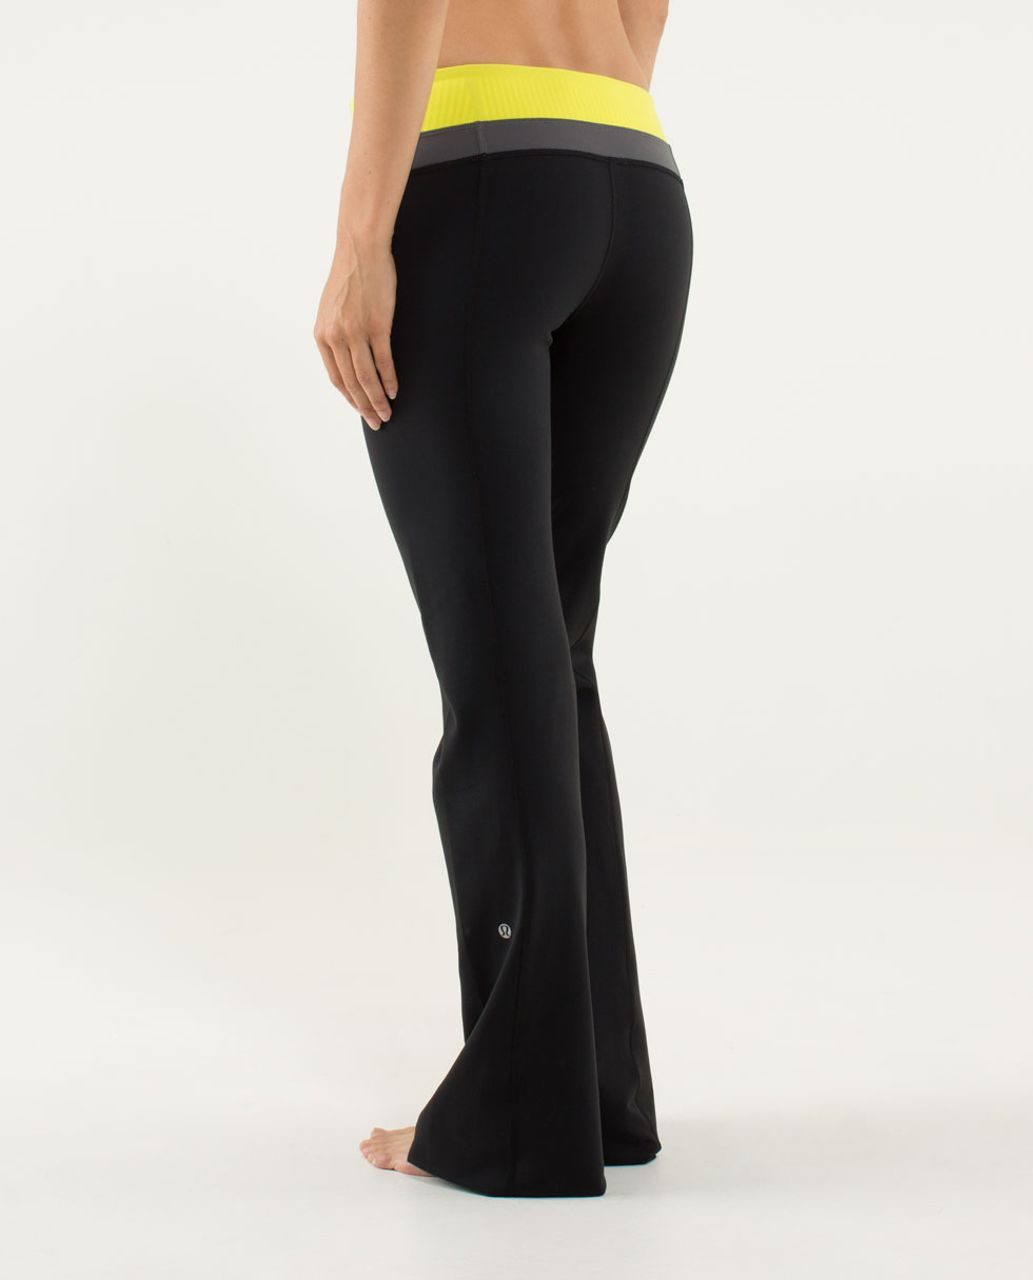 Lululemon Groove Pant (Regular) - Black / Quilt 07 Fall 2013